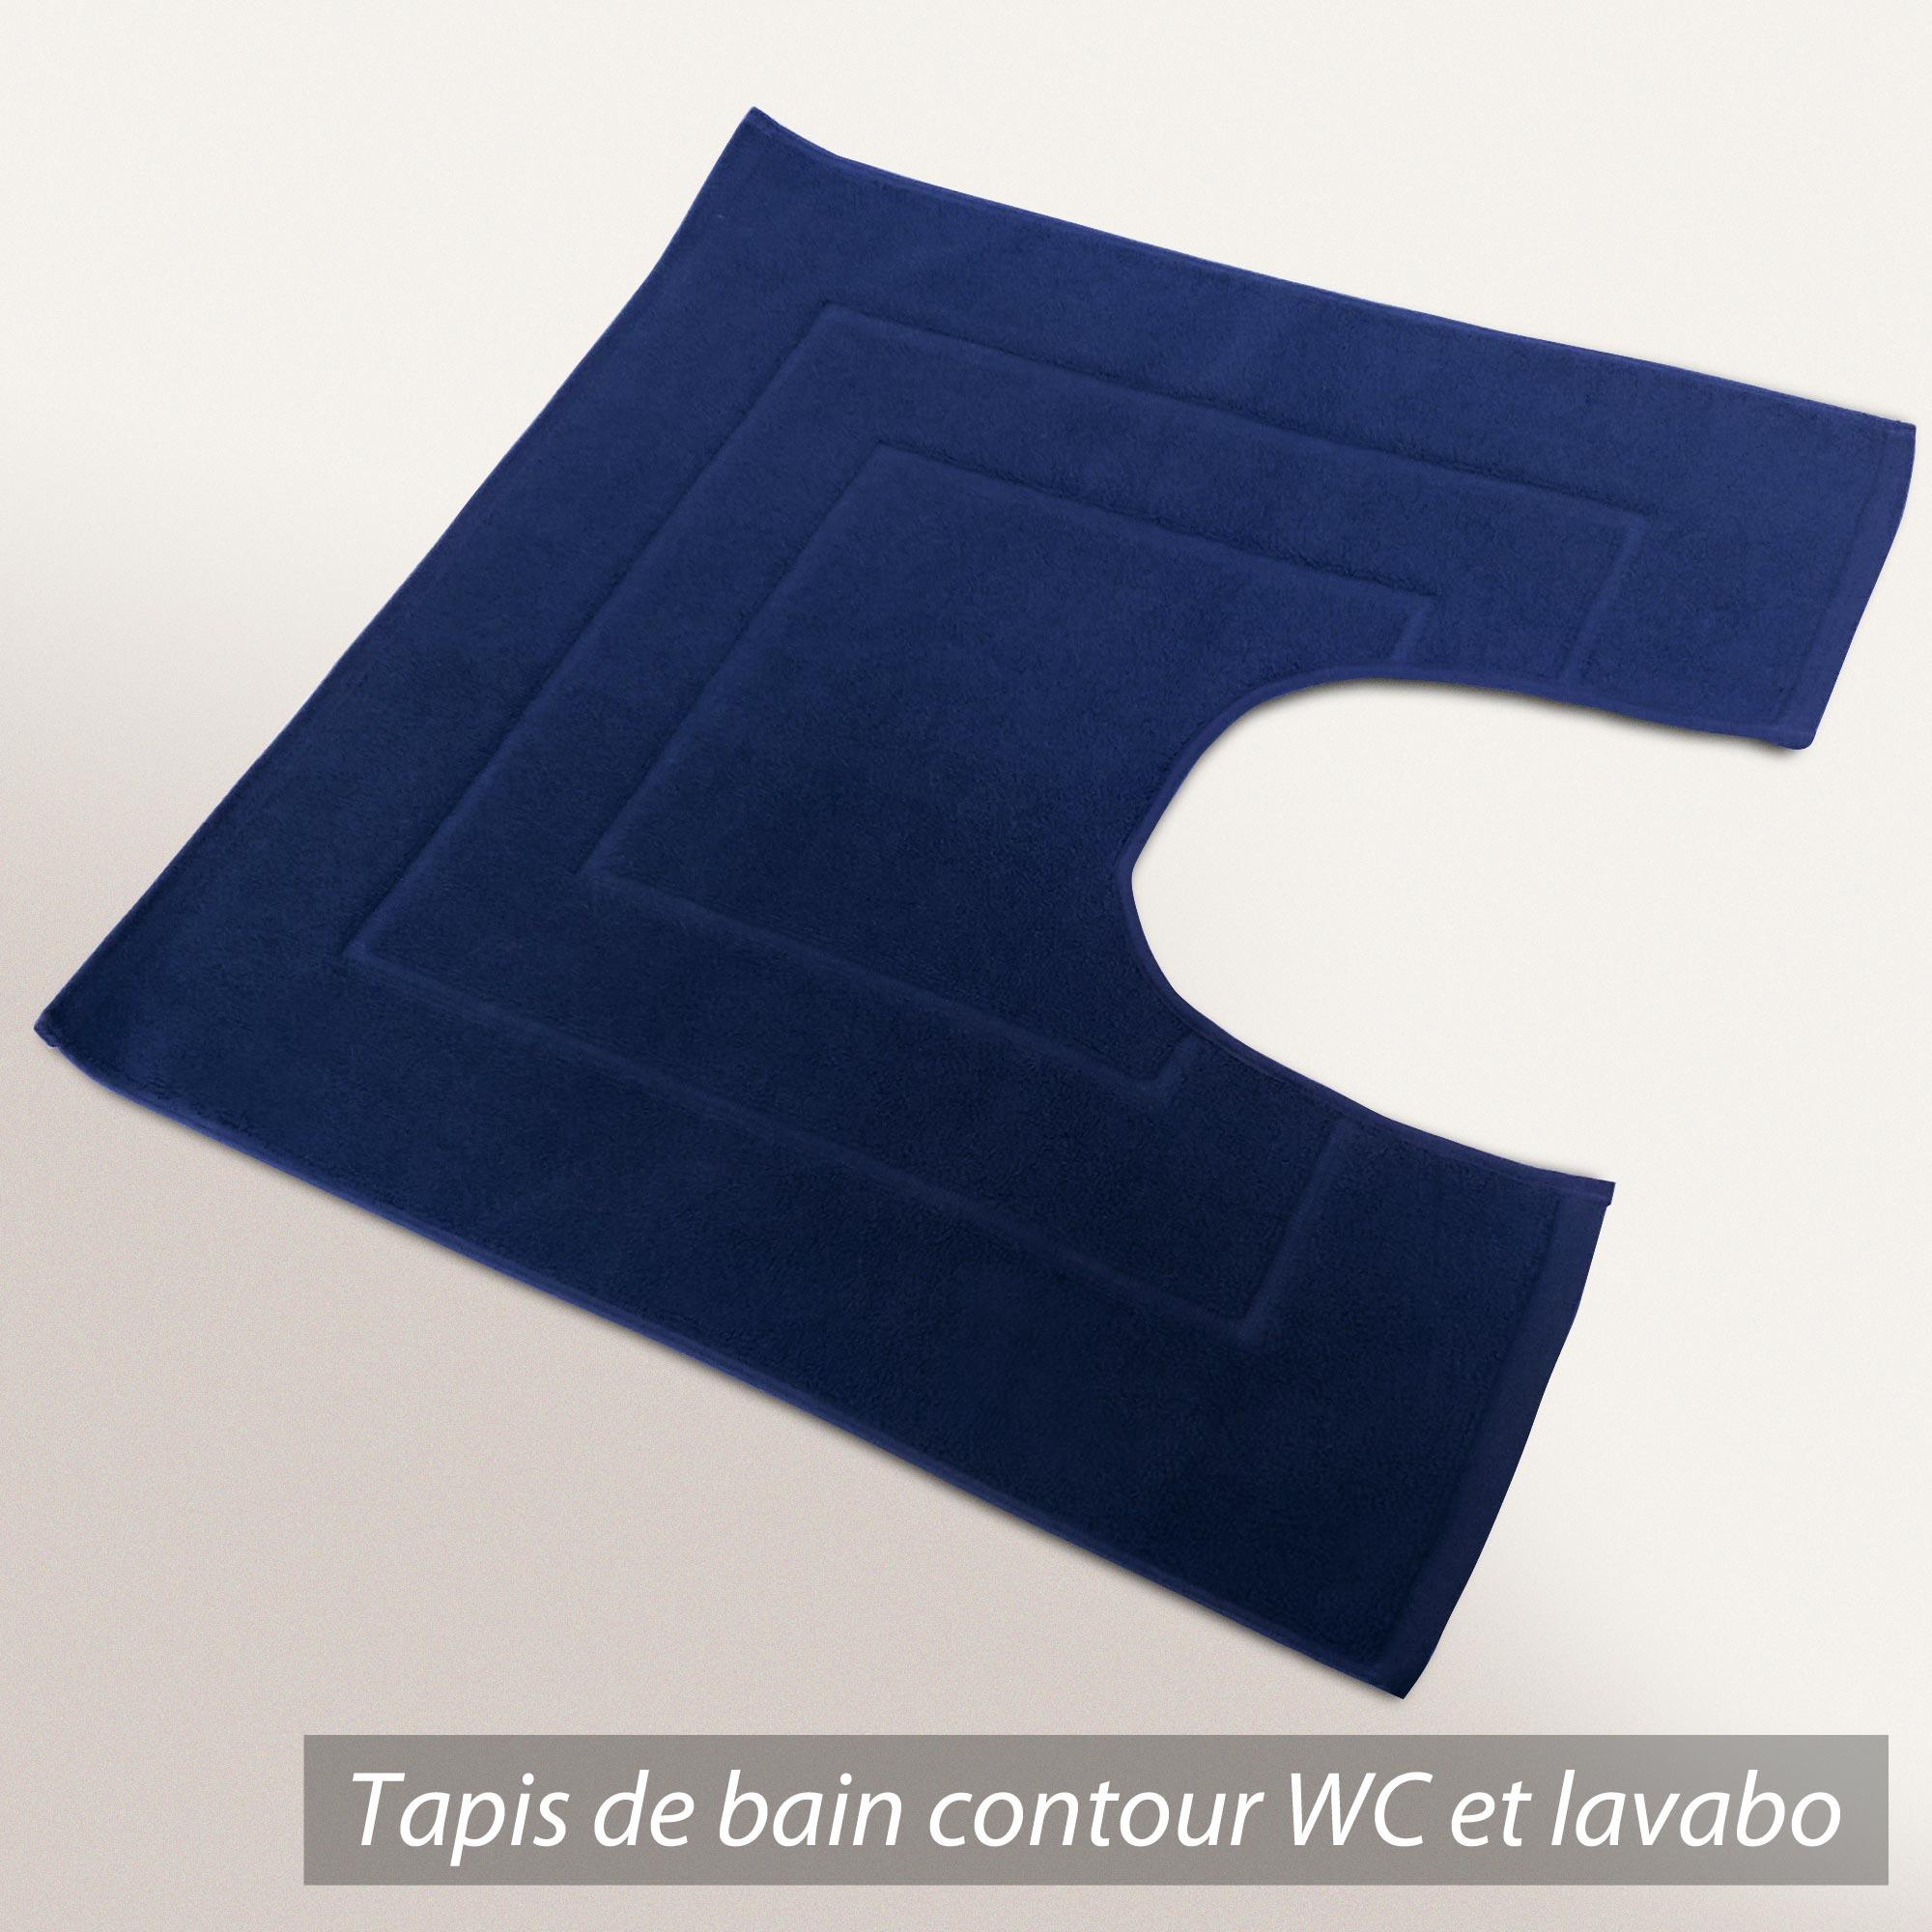 tapis de bain contour wc 60x60cm uni coton flair bleu marine linnea vente de linge de maison. Black Bedroom Furniture Sets. Home Design Ideas